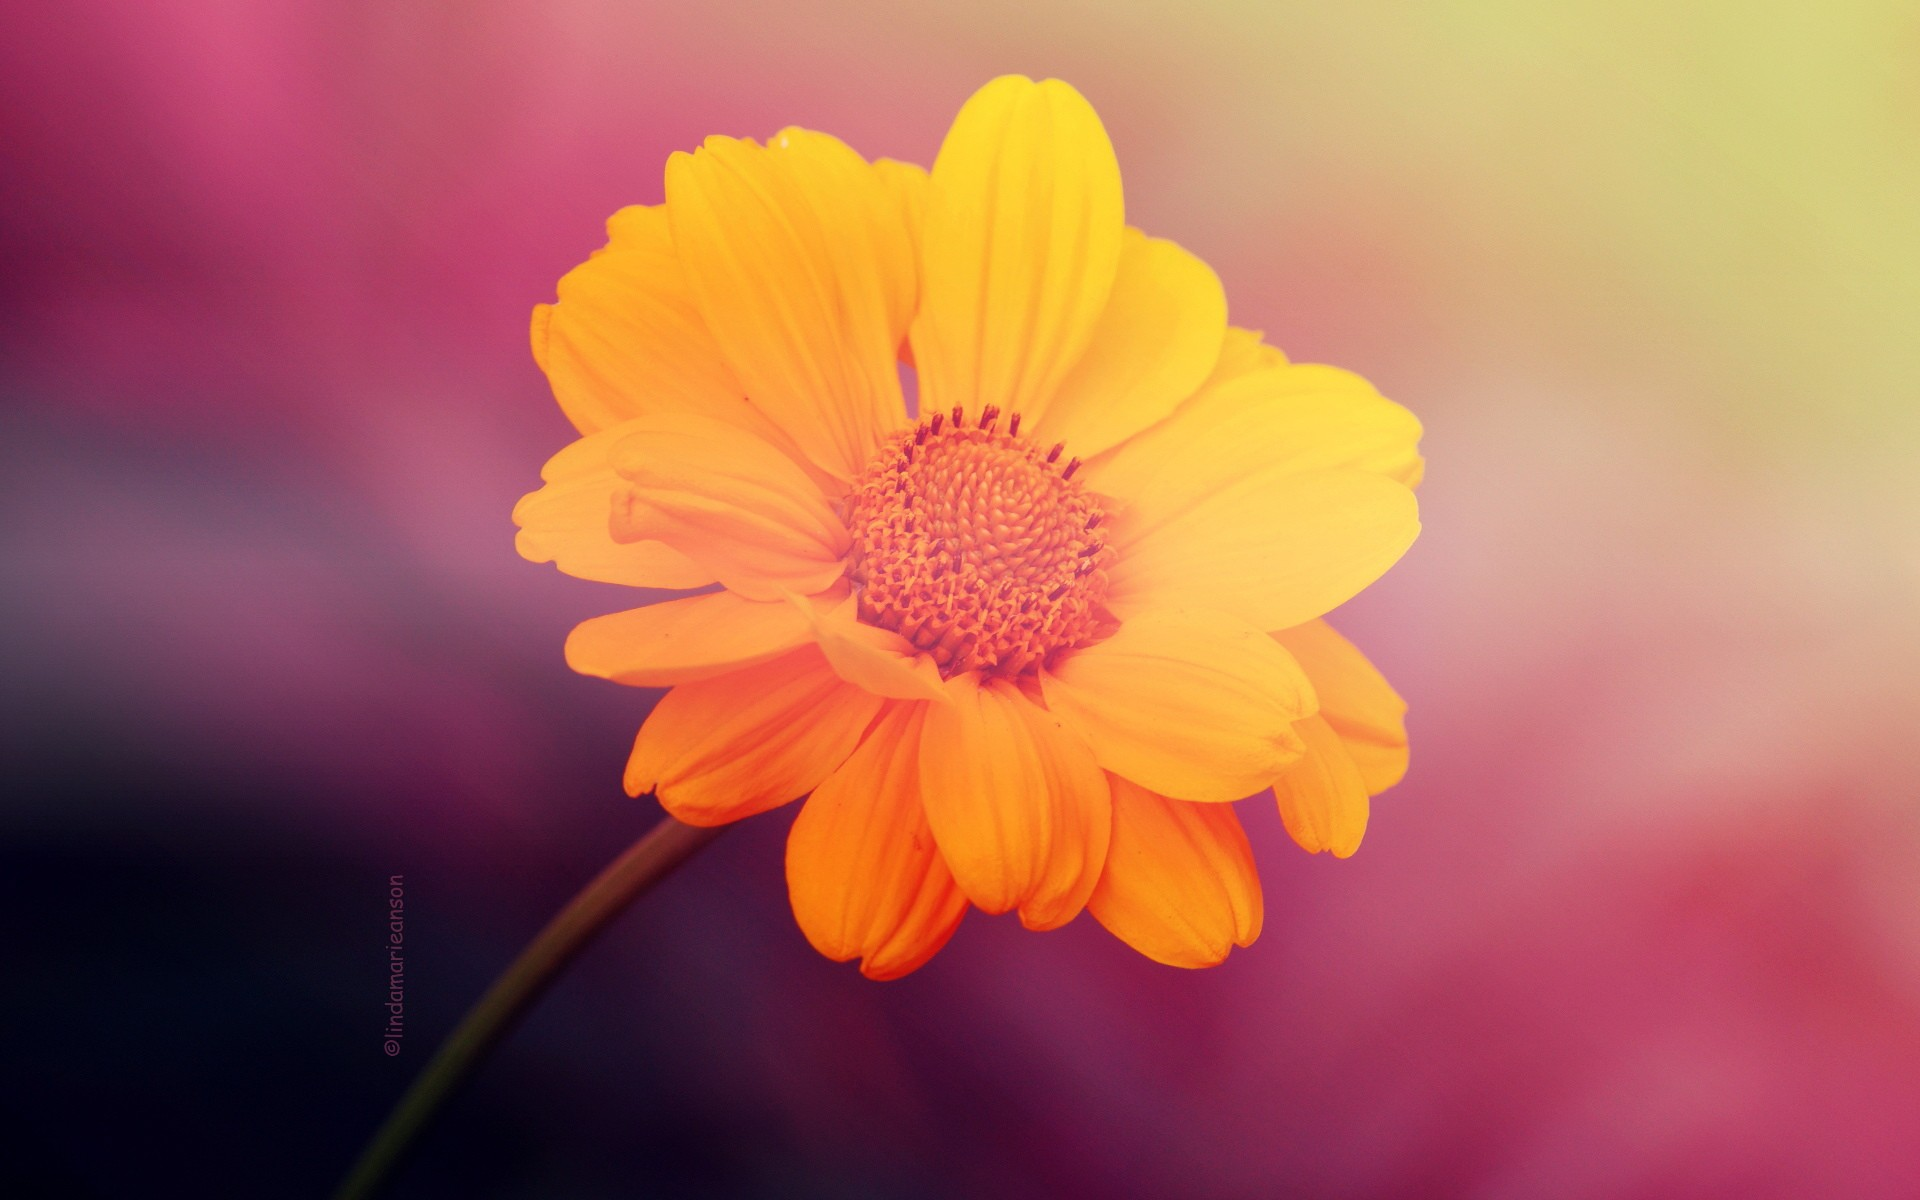 Image Yellow Flower On Pink Background Wallpapers And Stock Photos